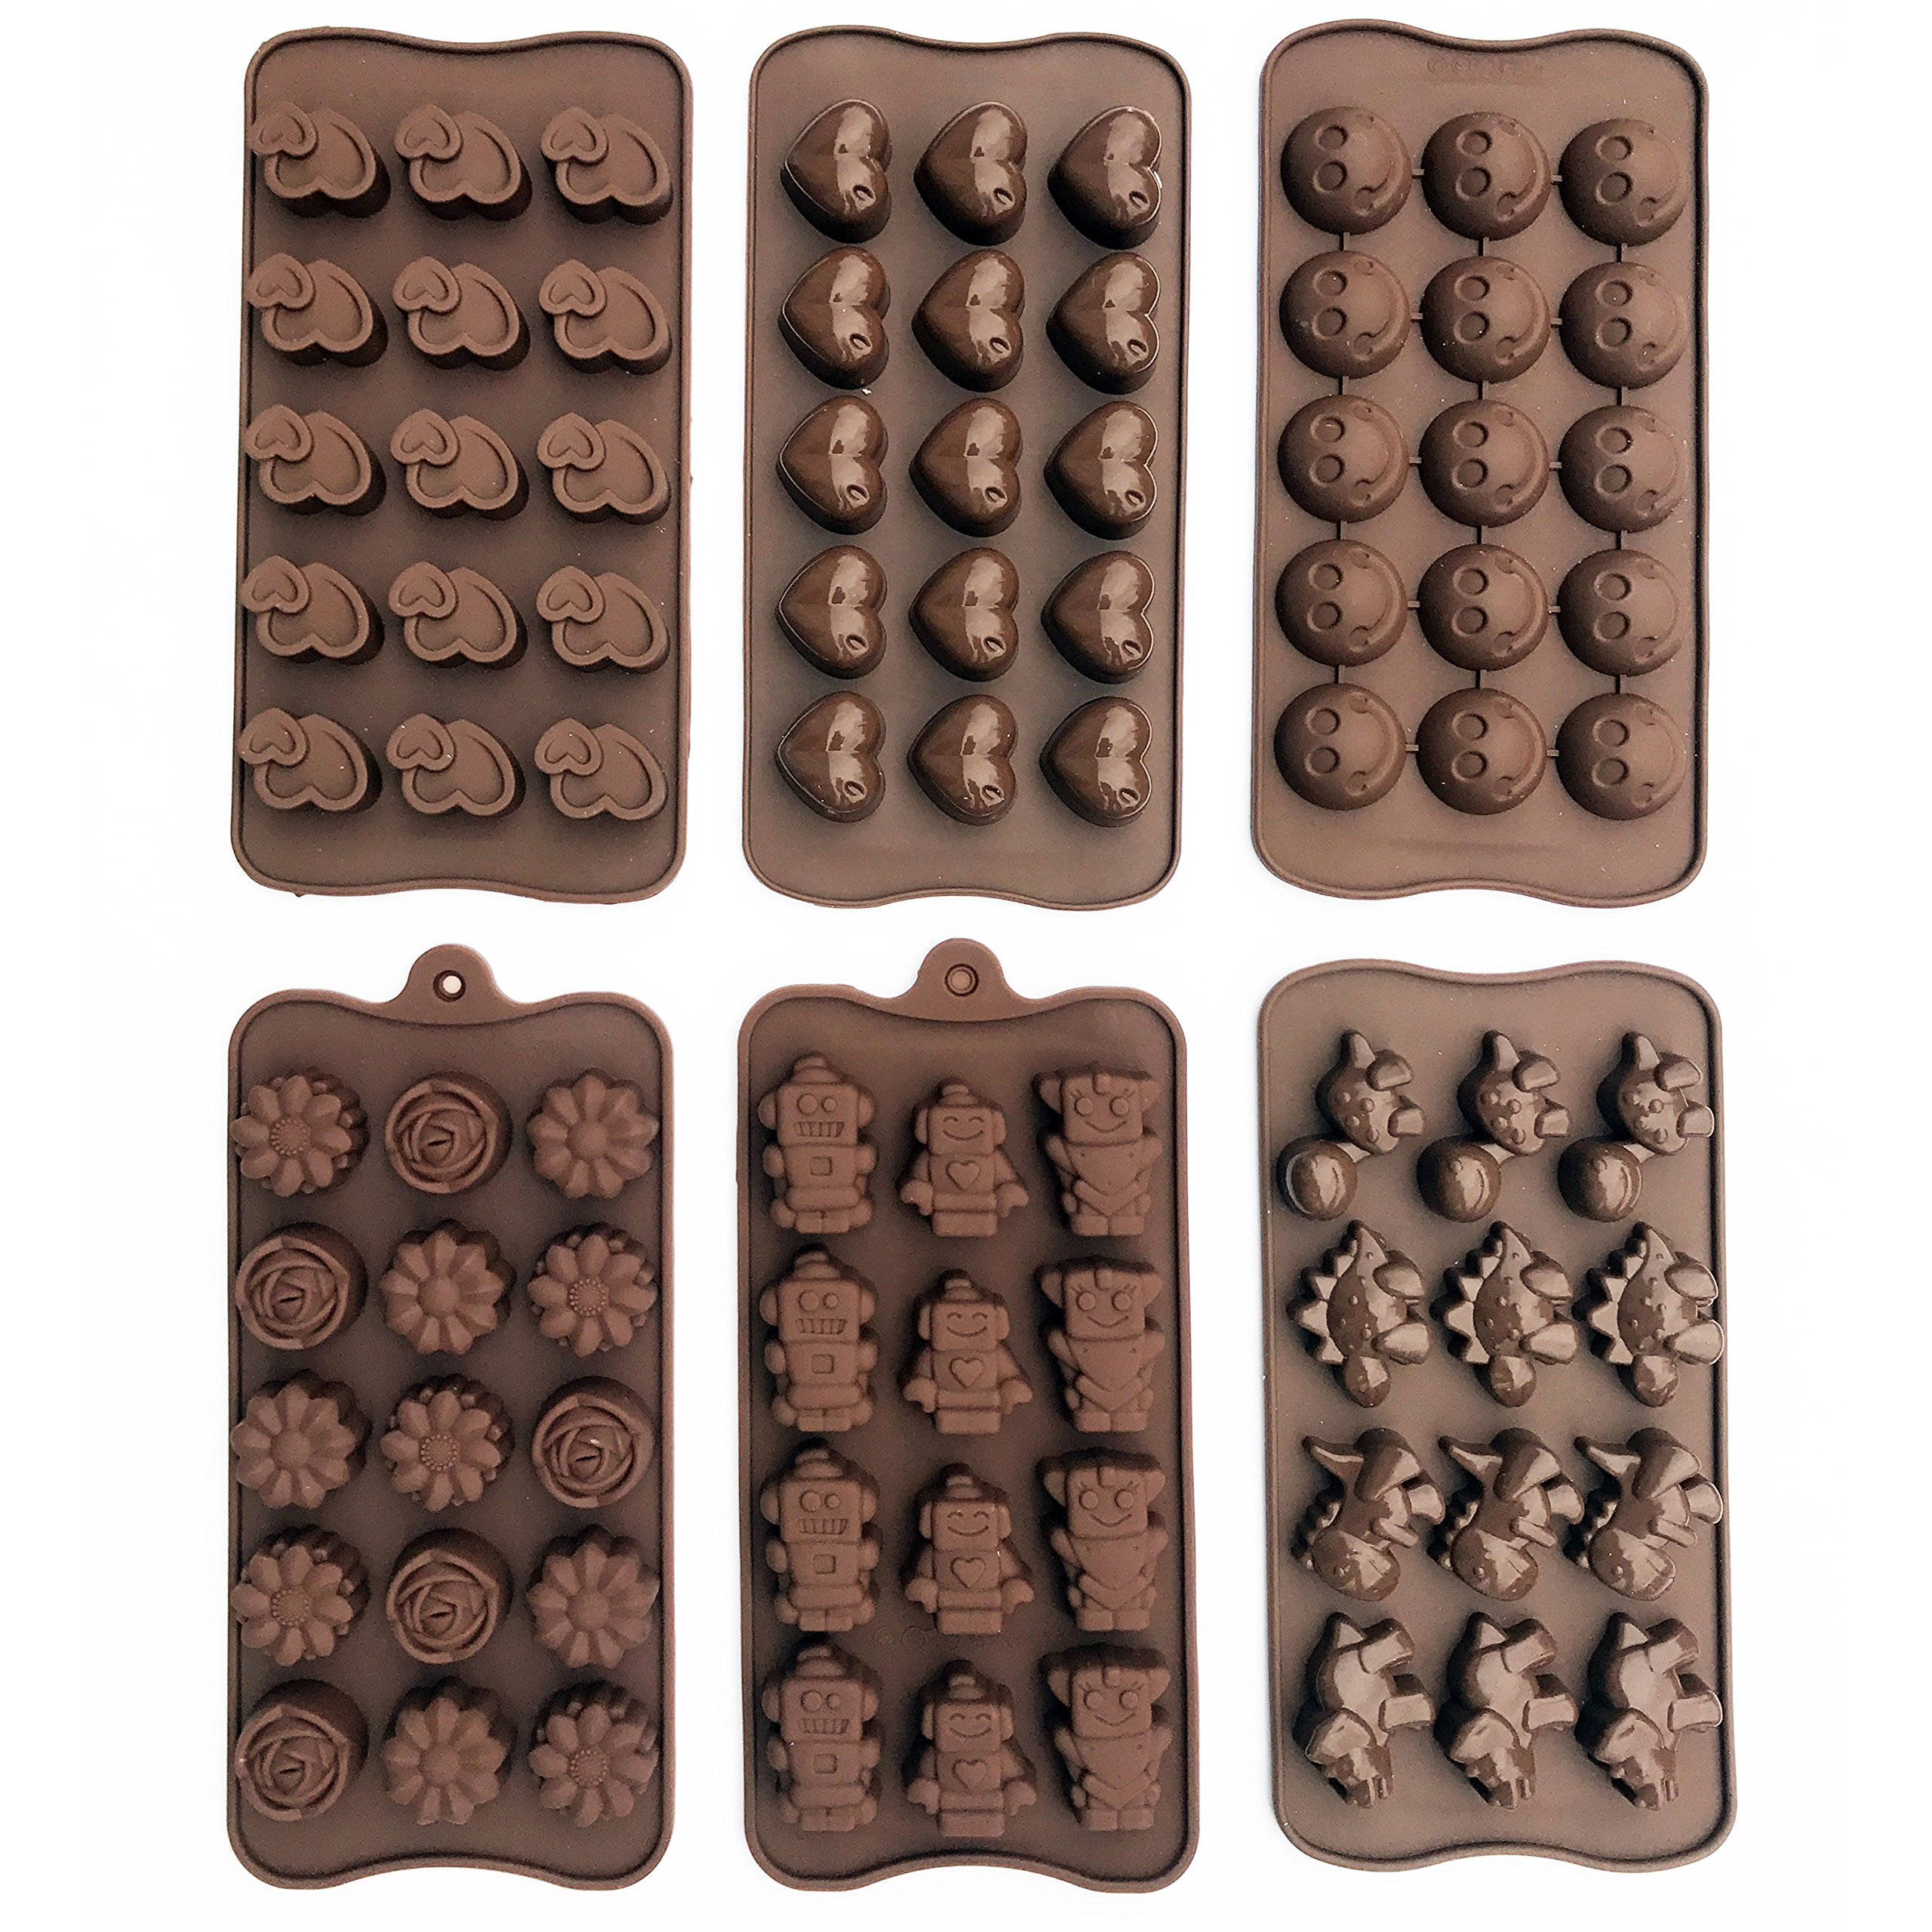 6-PACK Silicone Gel Non-stick Chocolate, Jelly and Candy Mold, 15 Cavities Each, Bon-Bon Cake Baking Mold (Set of 6, Different Styles) by Talented Kitchen